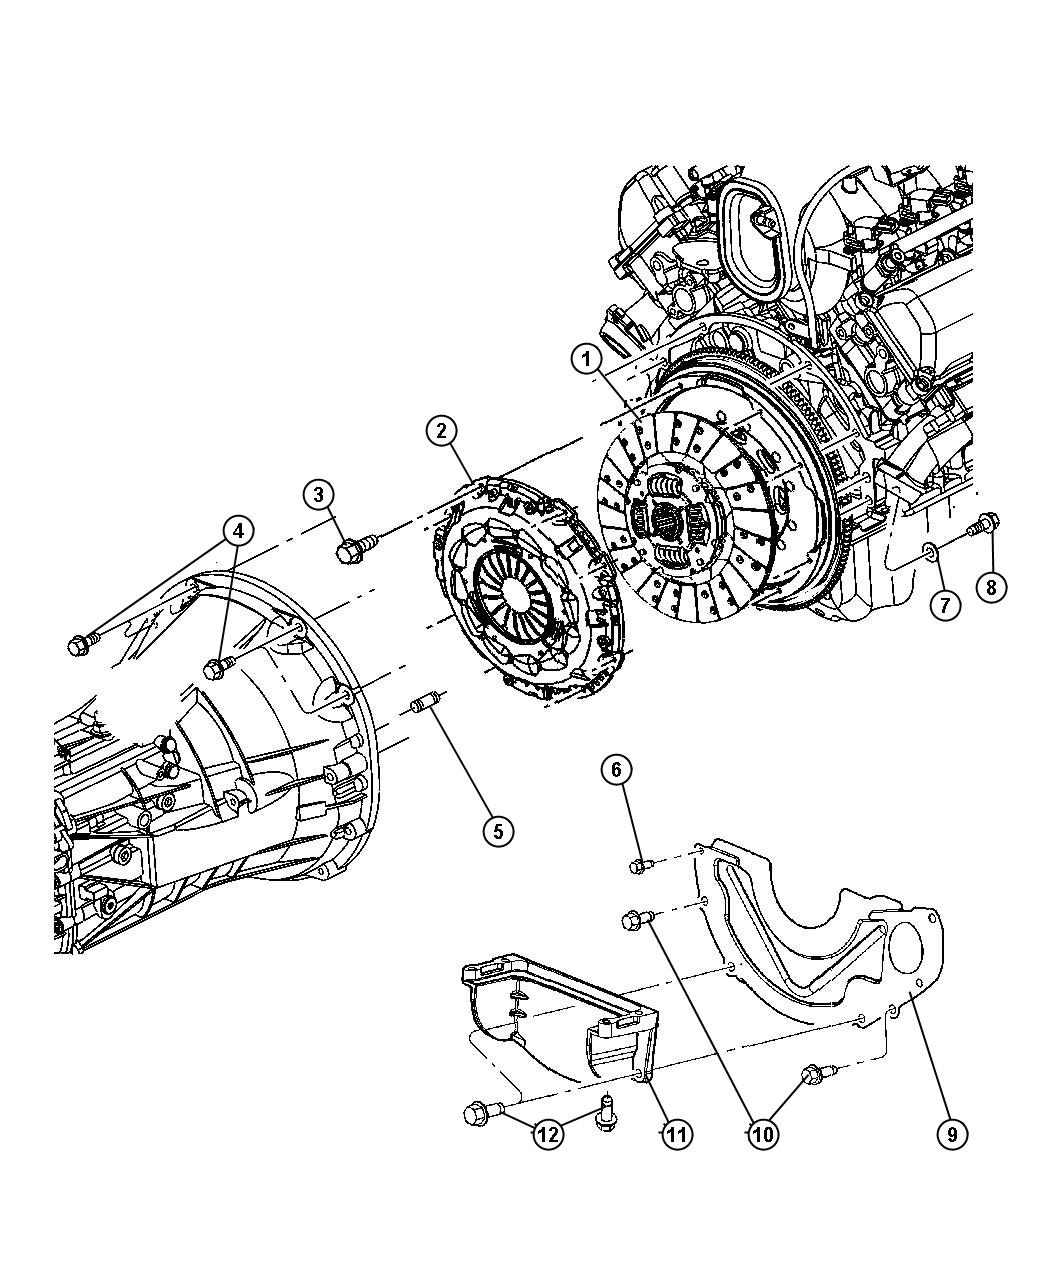 Dodge Ram Clutch Kit Used For Pressure Plate